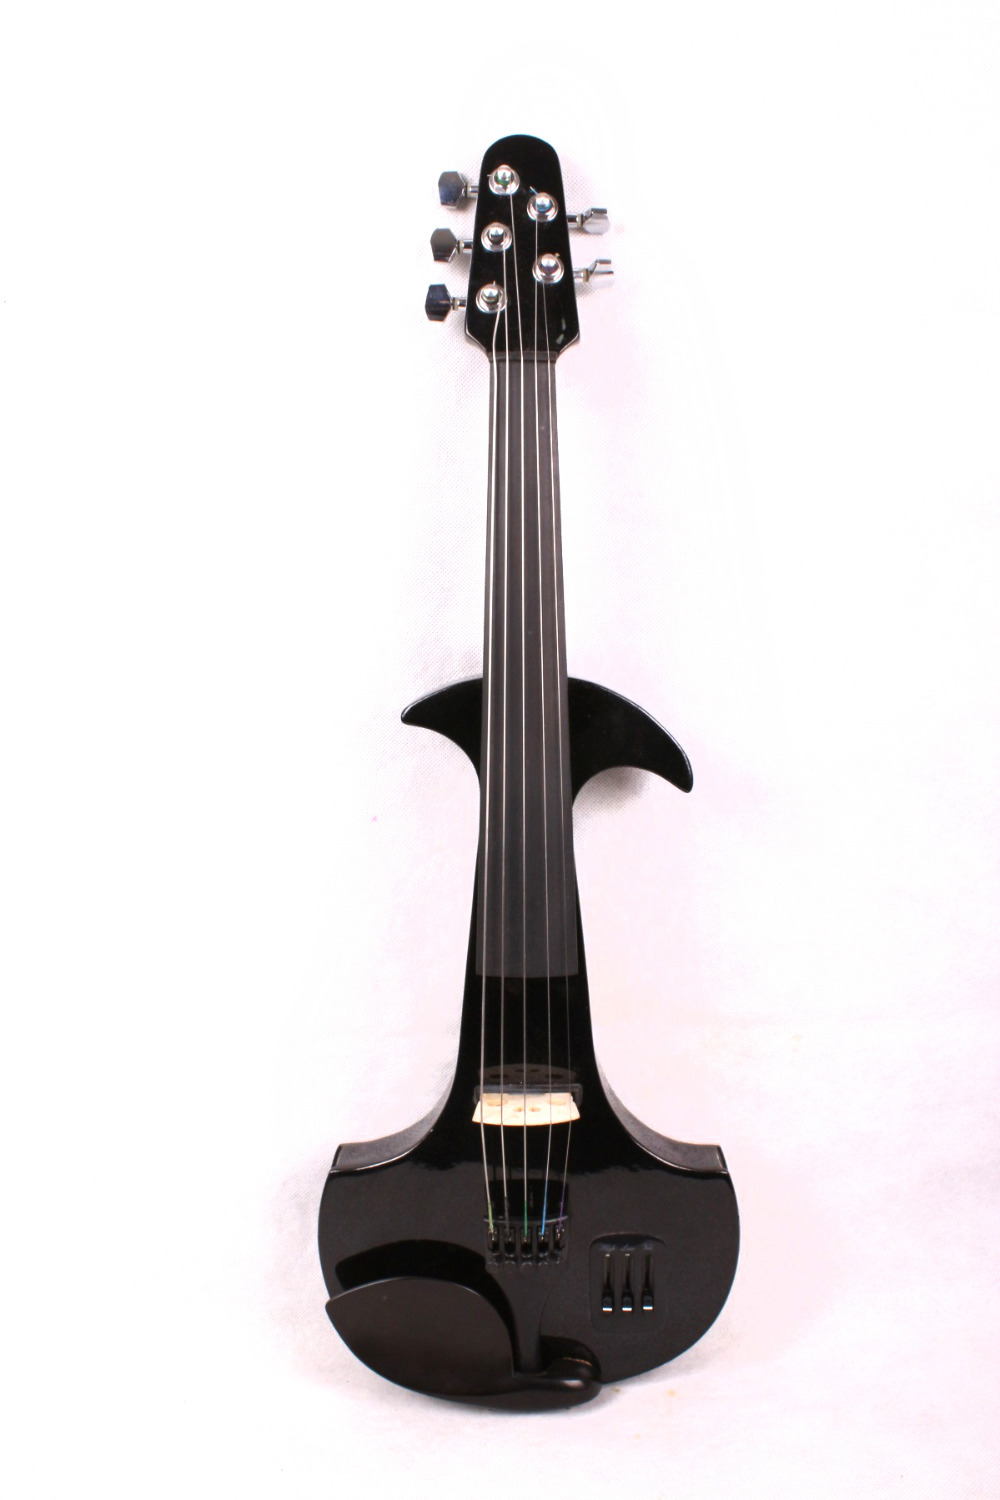 New 5 string 4/4 Electric Violin Flame guitar shape Powerful Sound Big jack #4 mp3 6 string electric violin new 4 4 flame guitar shape solid wood powerful sound6 611